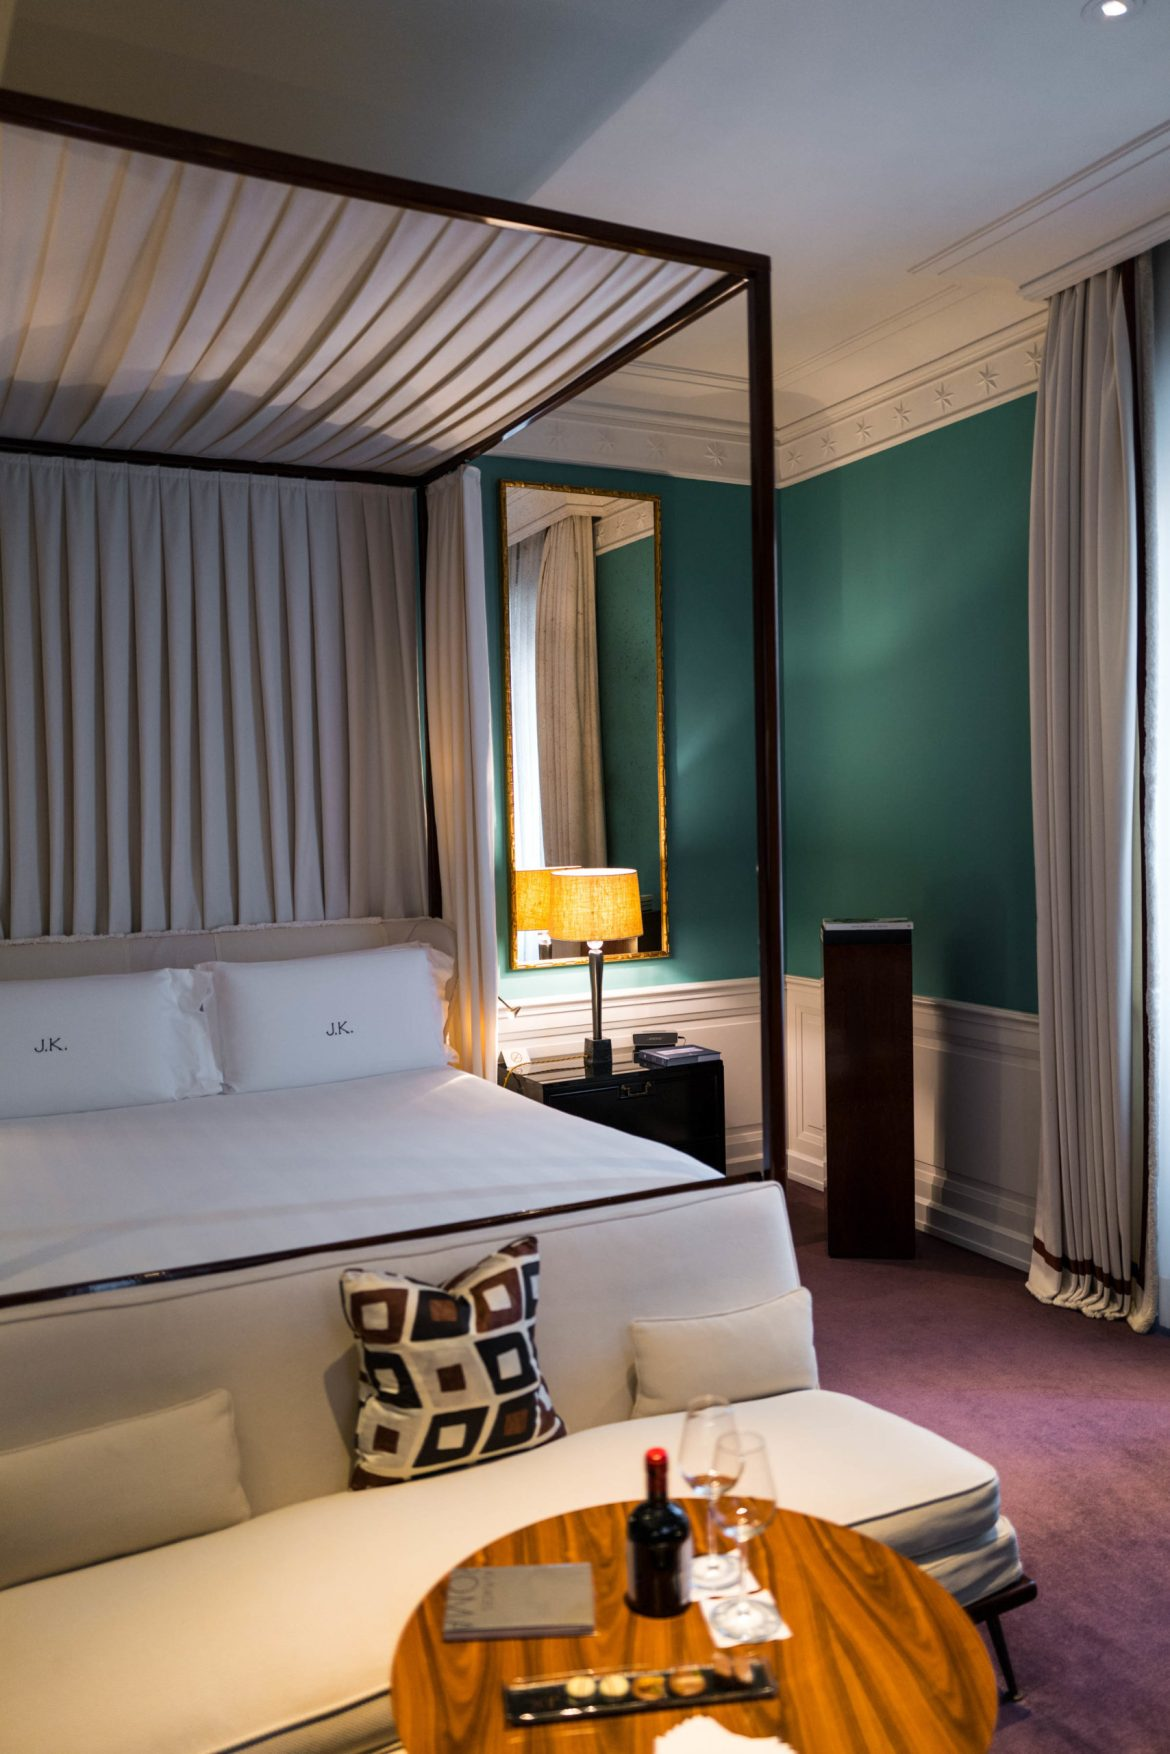 JK Place Roma will give you a comfortable bed along with luxury at this boutique hotel in Rome, The Taste Edit #hotel #rome #travel #decor #italy #bed